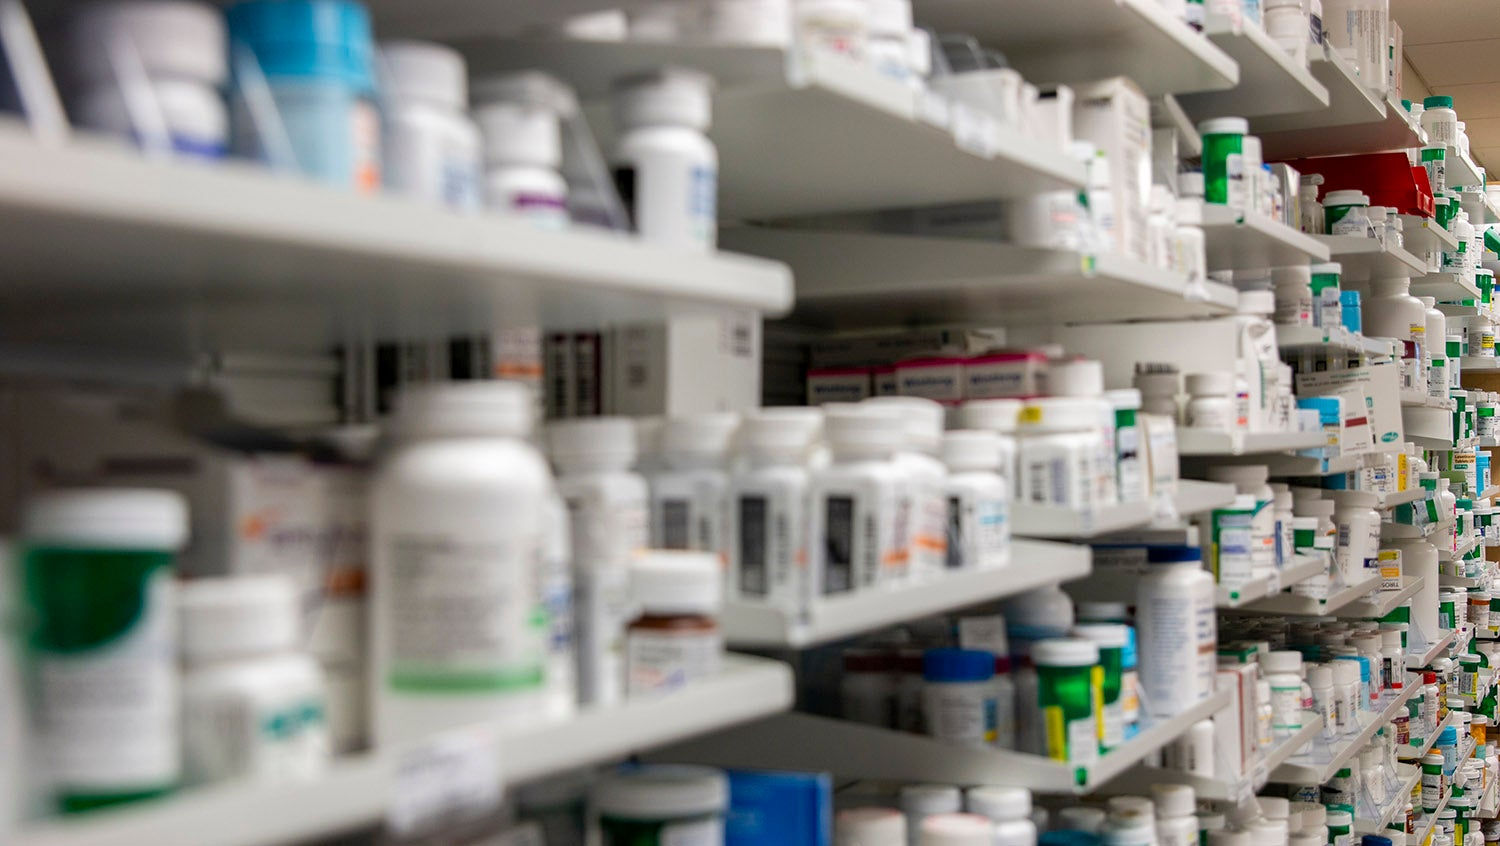 Marketing that targets physicians may sway prescribing behavior and contribute to the oversupply of stimulants.